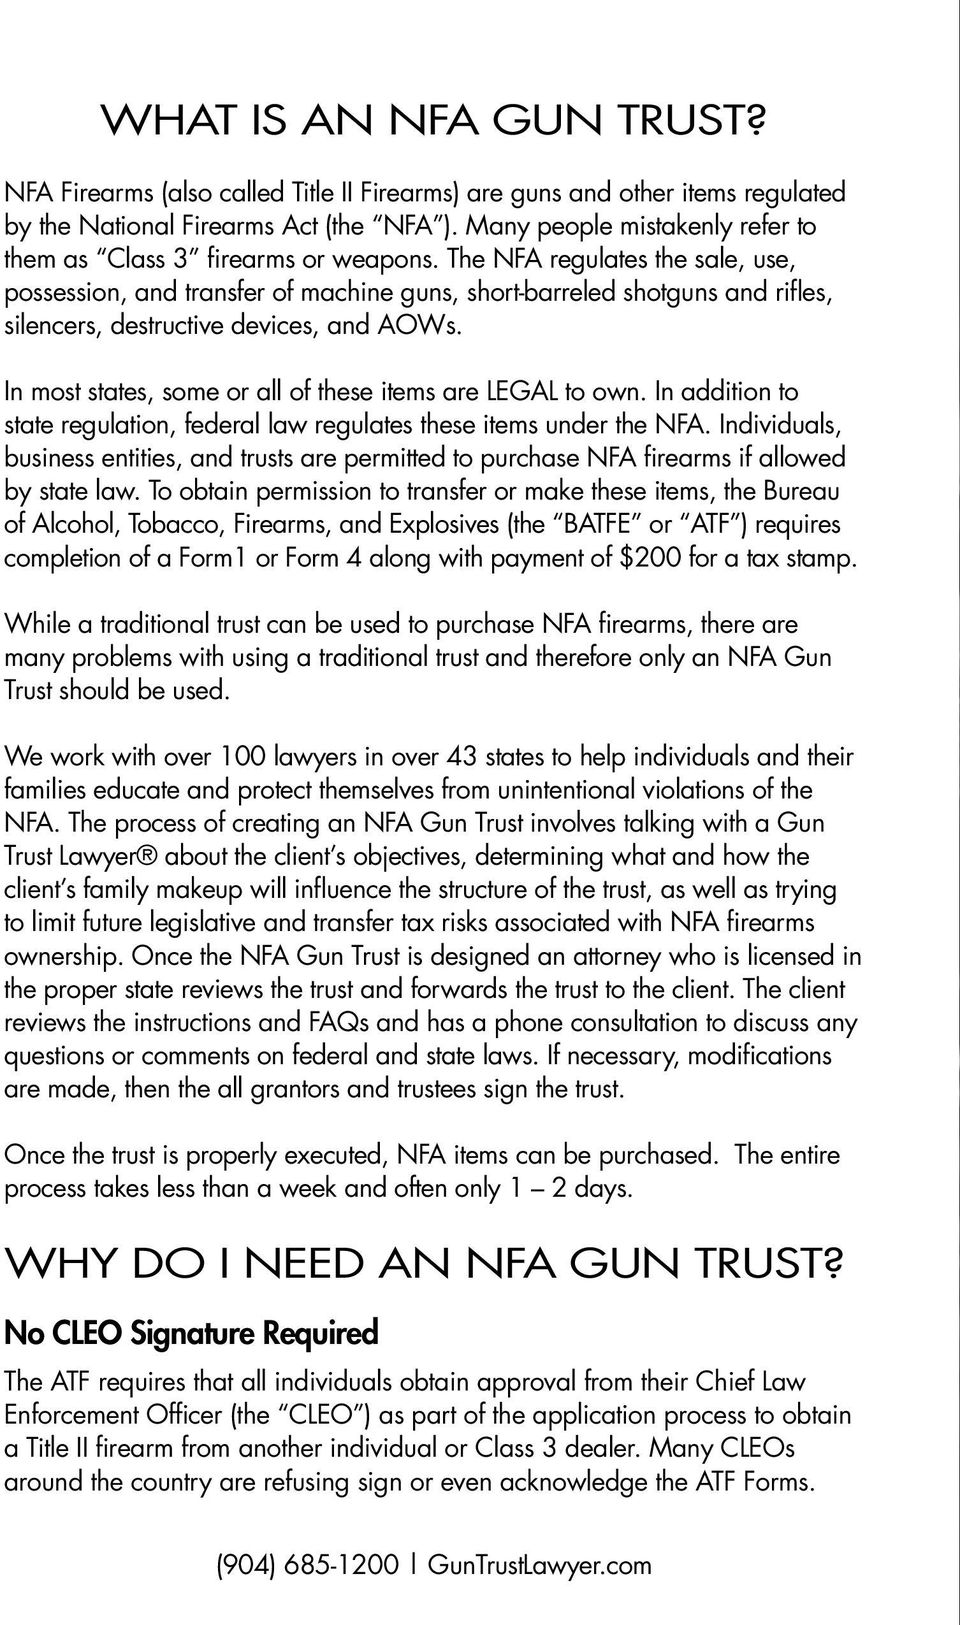 The NFA regulates the sale, use, possession, and transfer of machine guns, short-barreled shotguns and rifles, silencers, destructive devices, and AOWs.